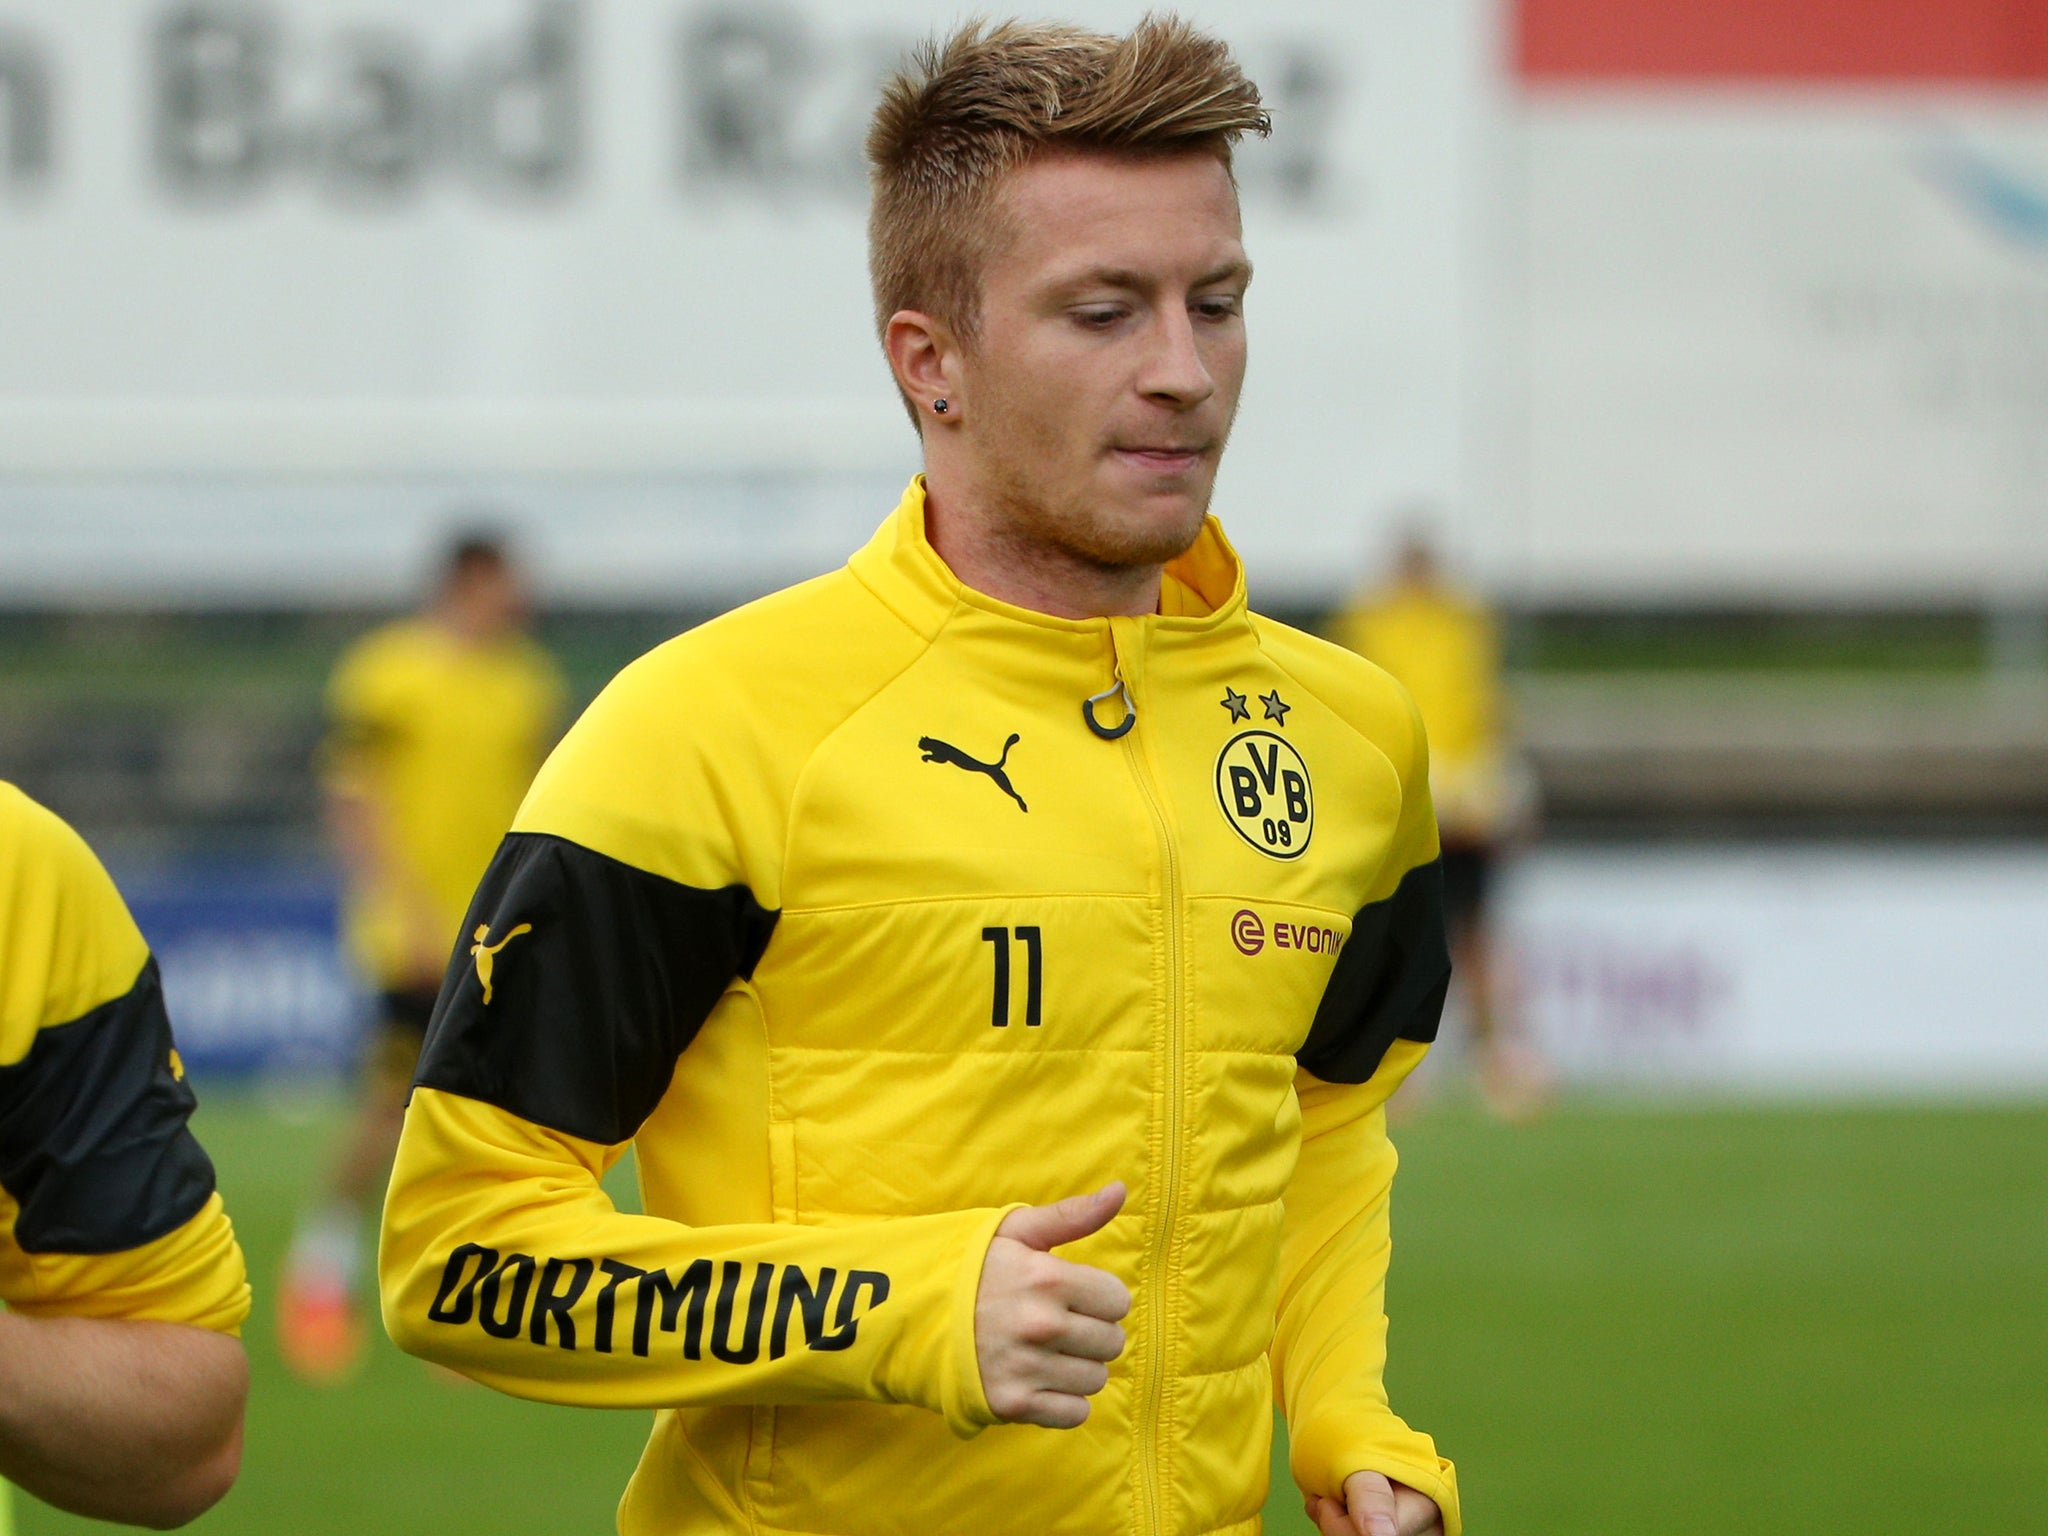 Marco reus liverpool manchester united and bayern munich line up marco reus liverpool manchester united and bayern munich line up to sign germany international the independent voltagebd Choice Image